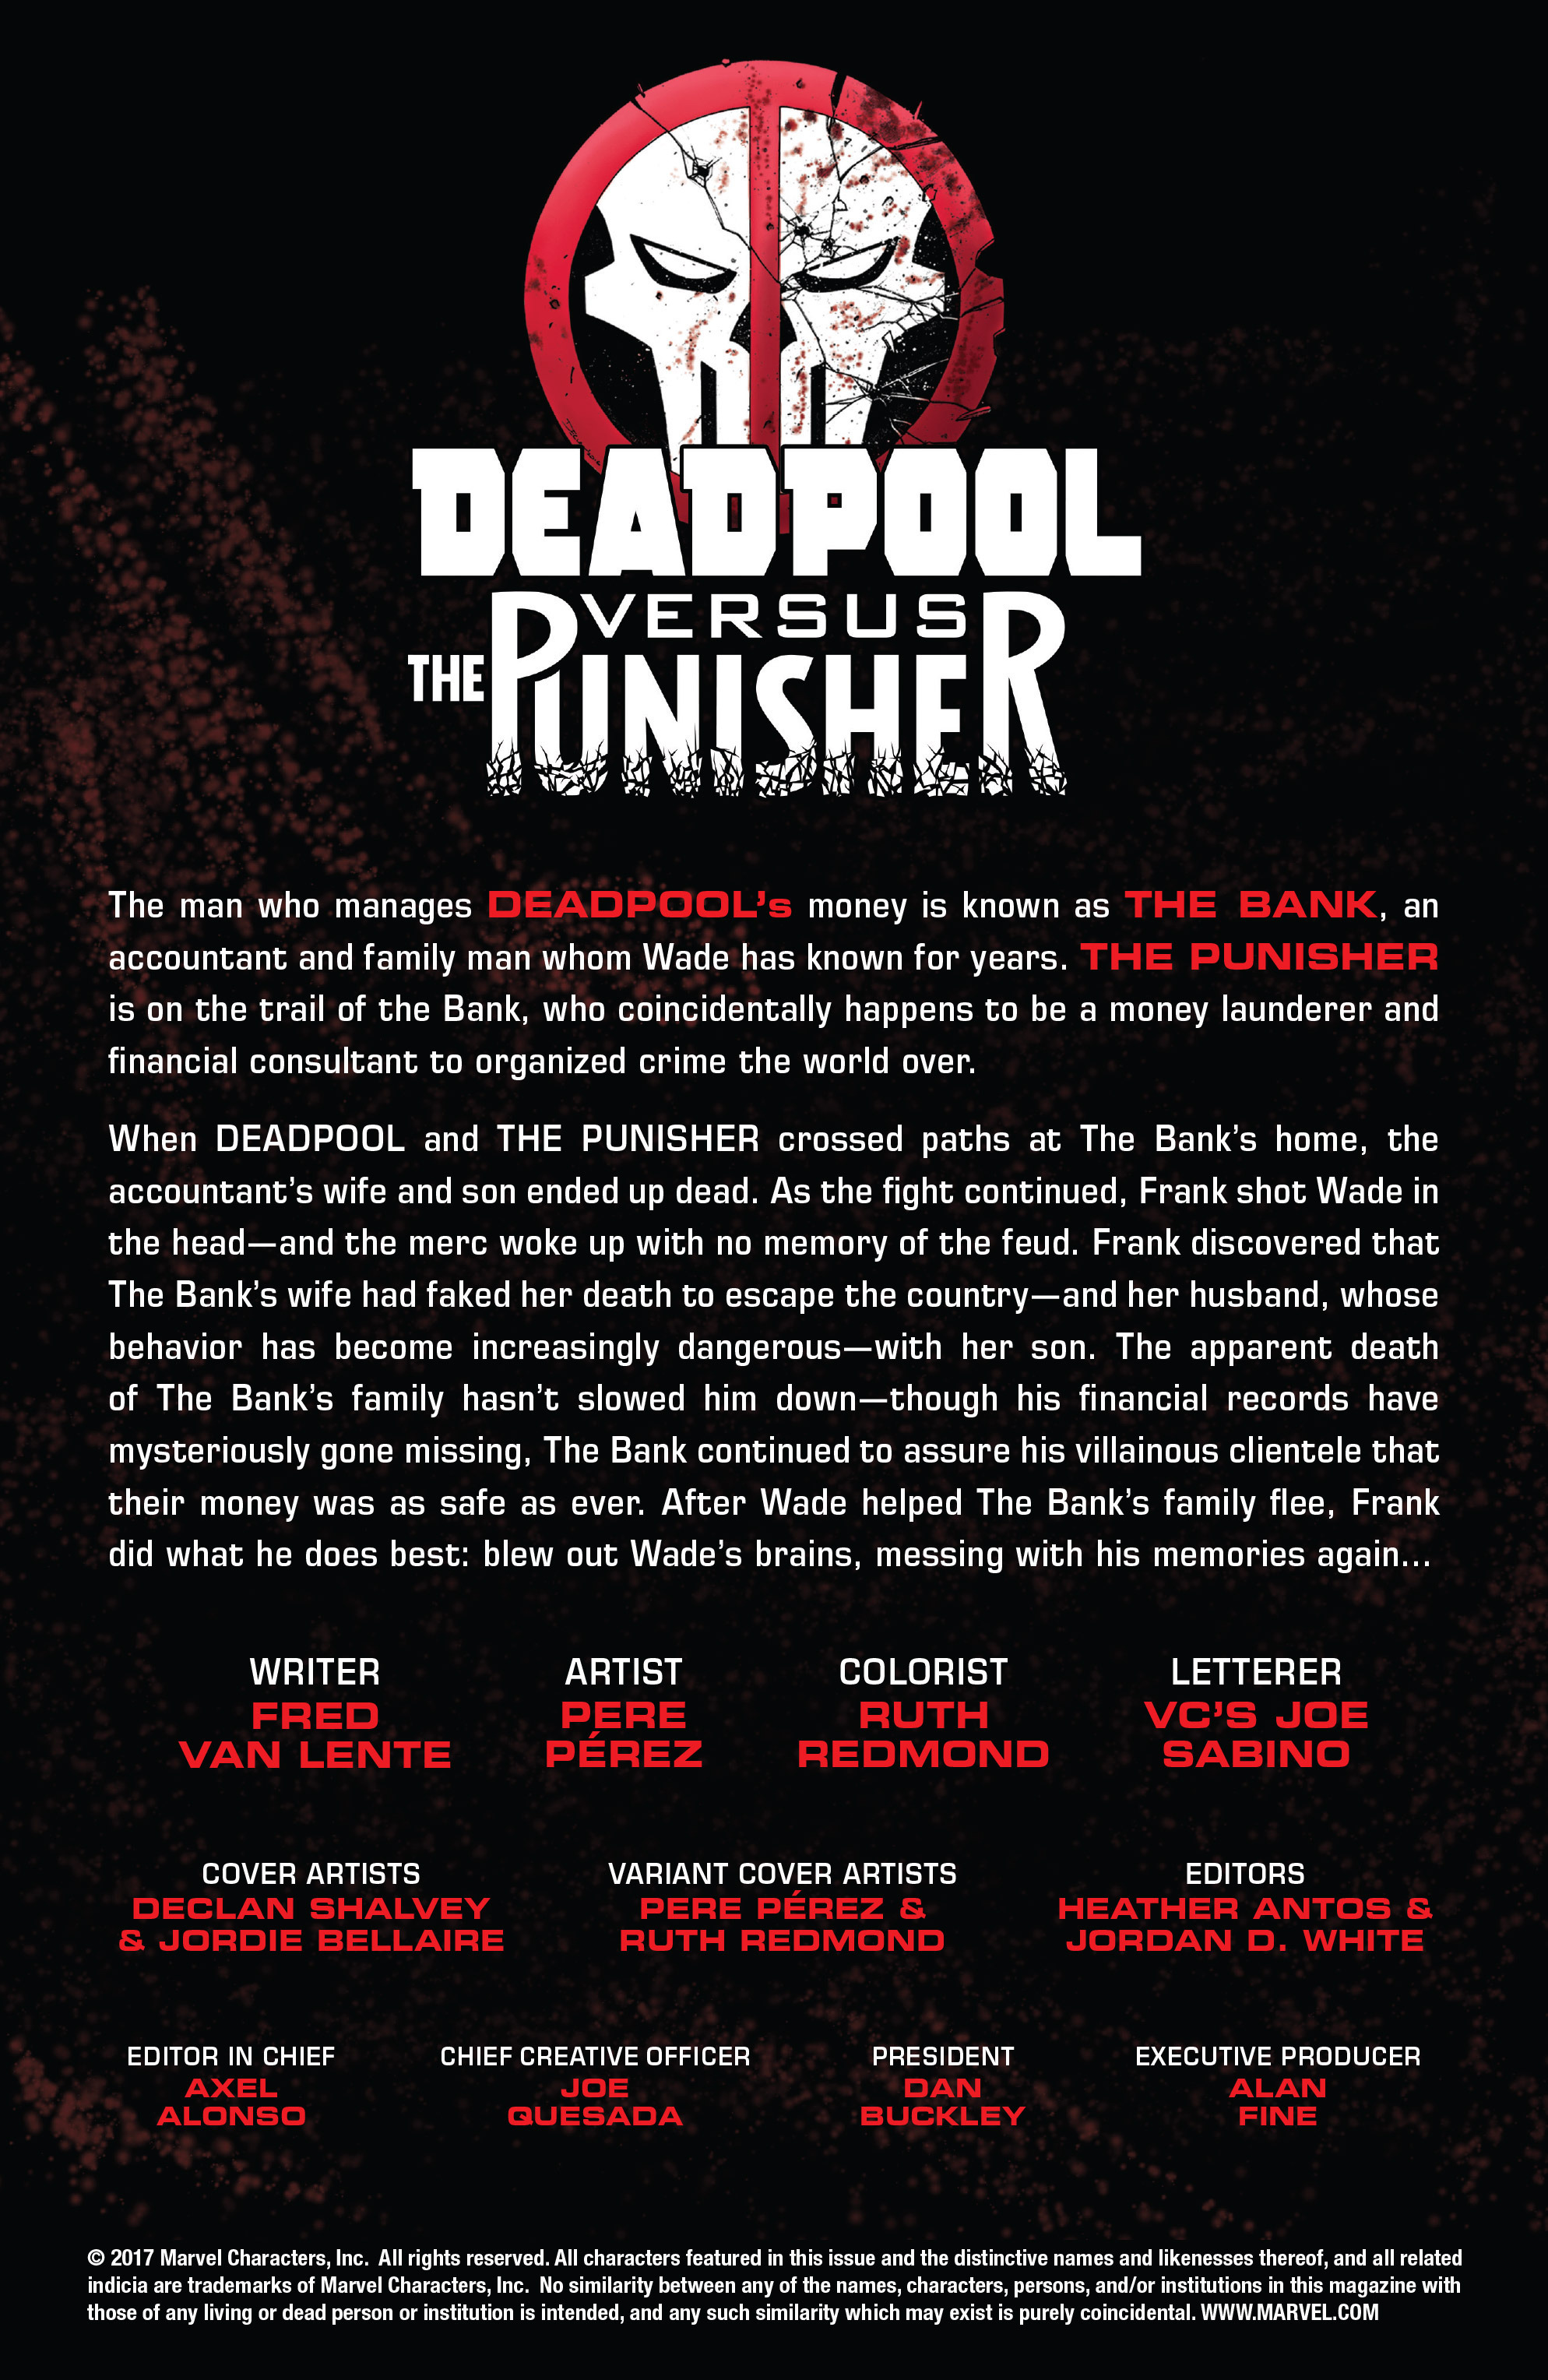 Read online Deadpool vs. The Punisher comic -  Issue #3 - 2